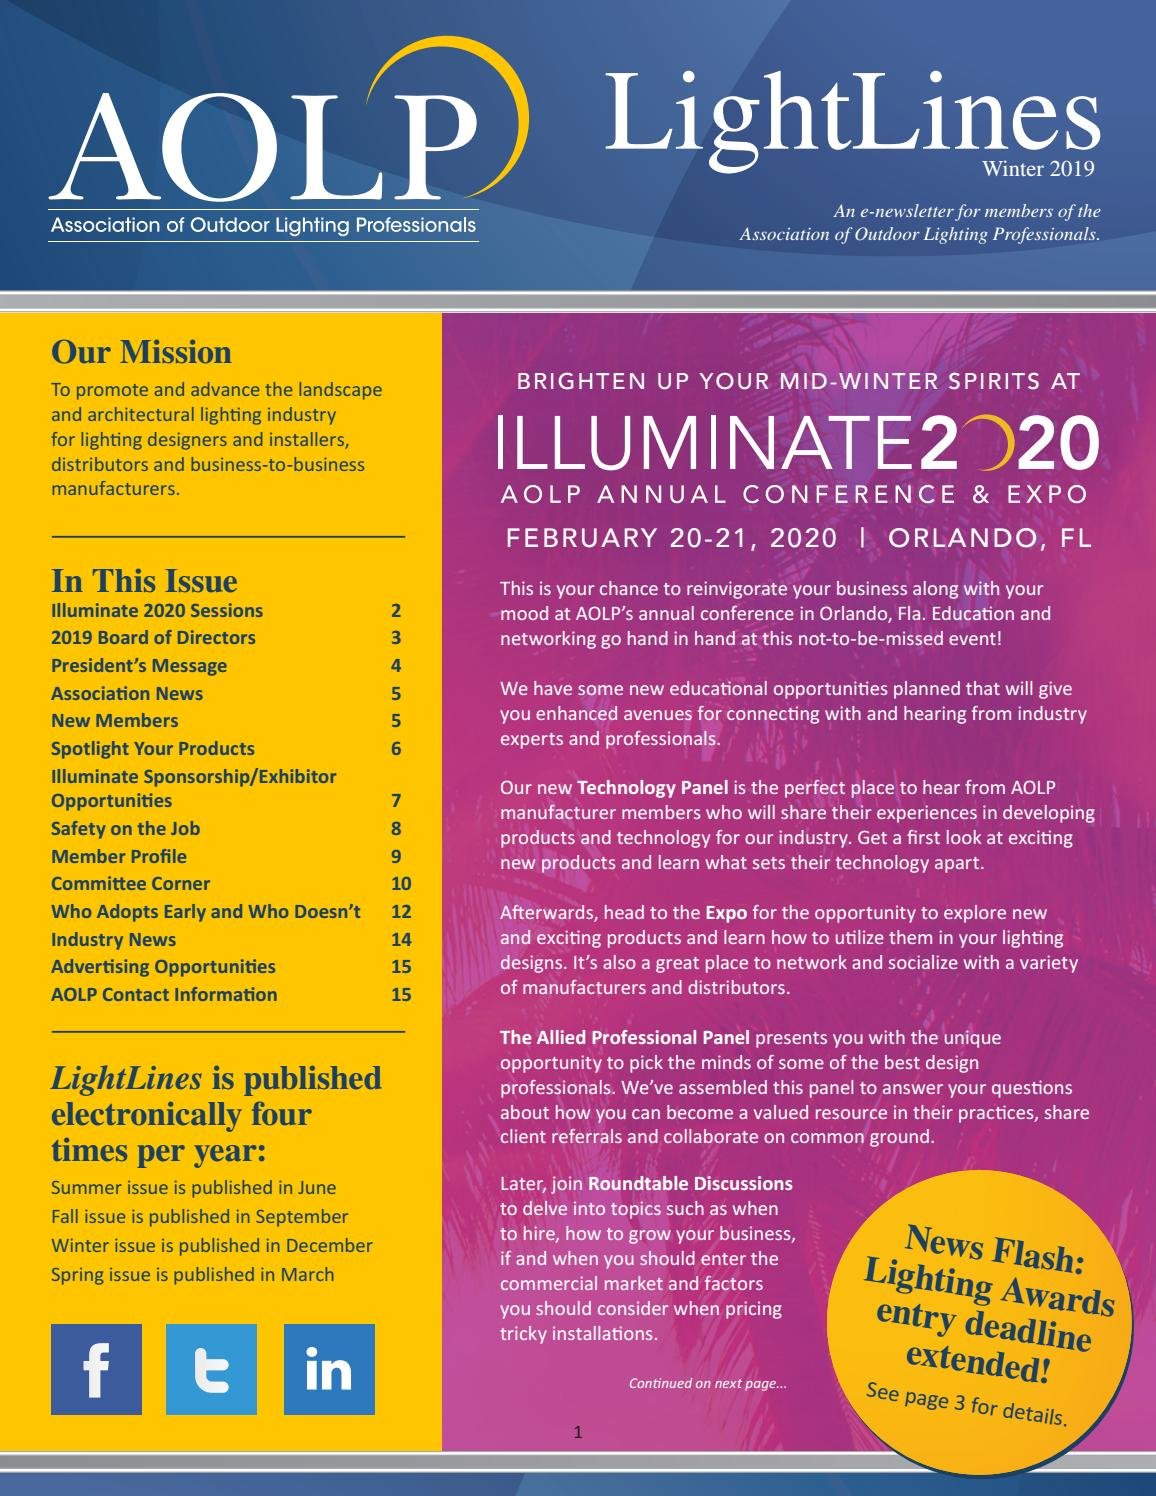 Aolp Lightlines 2019 Winter Issue By